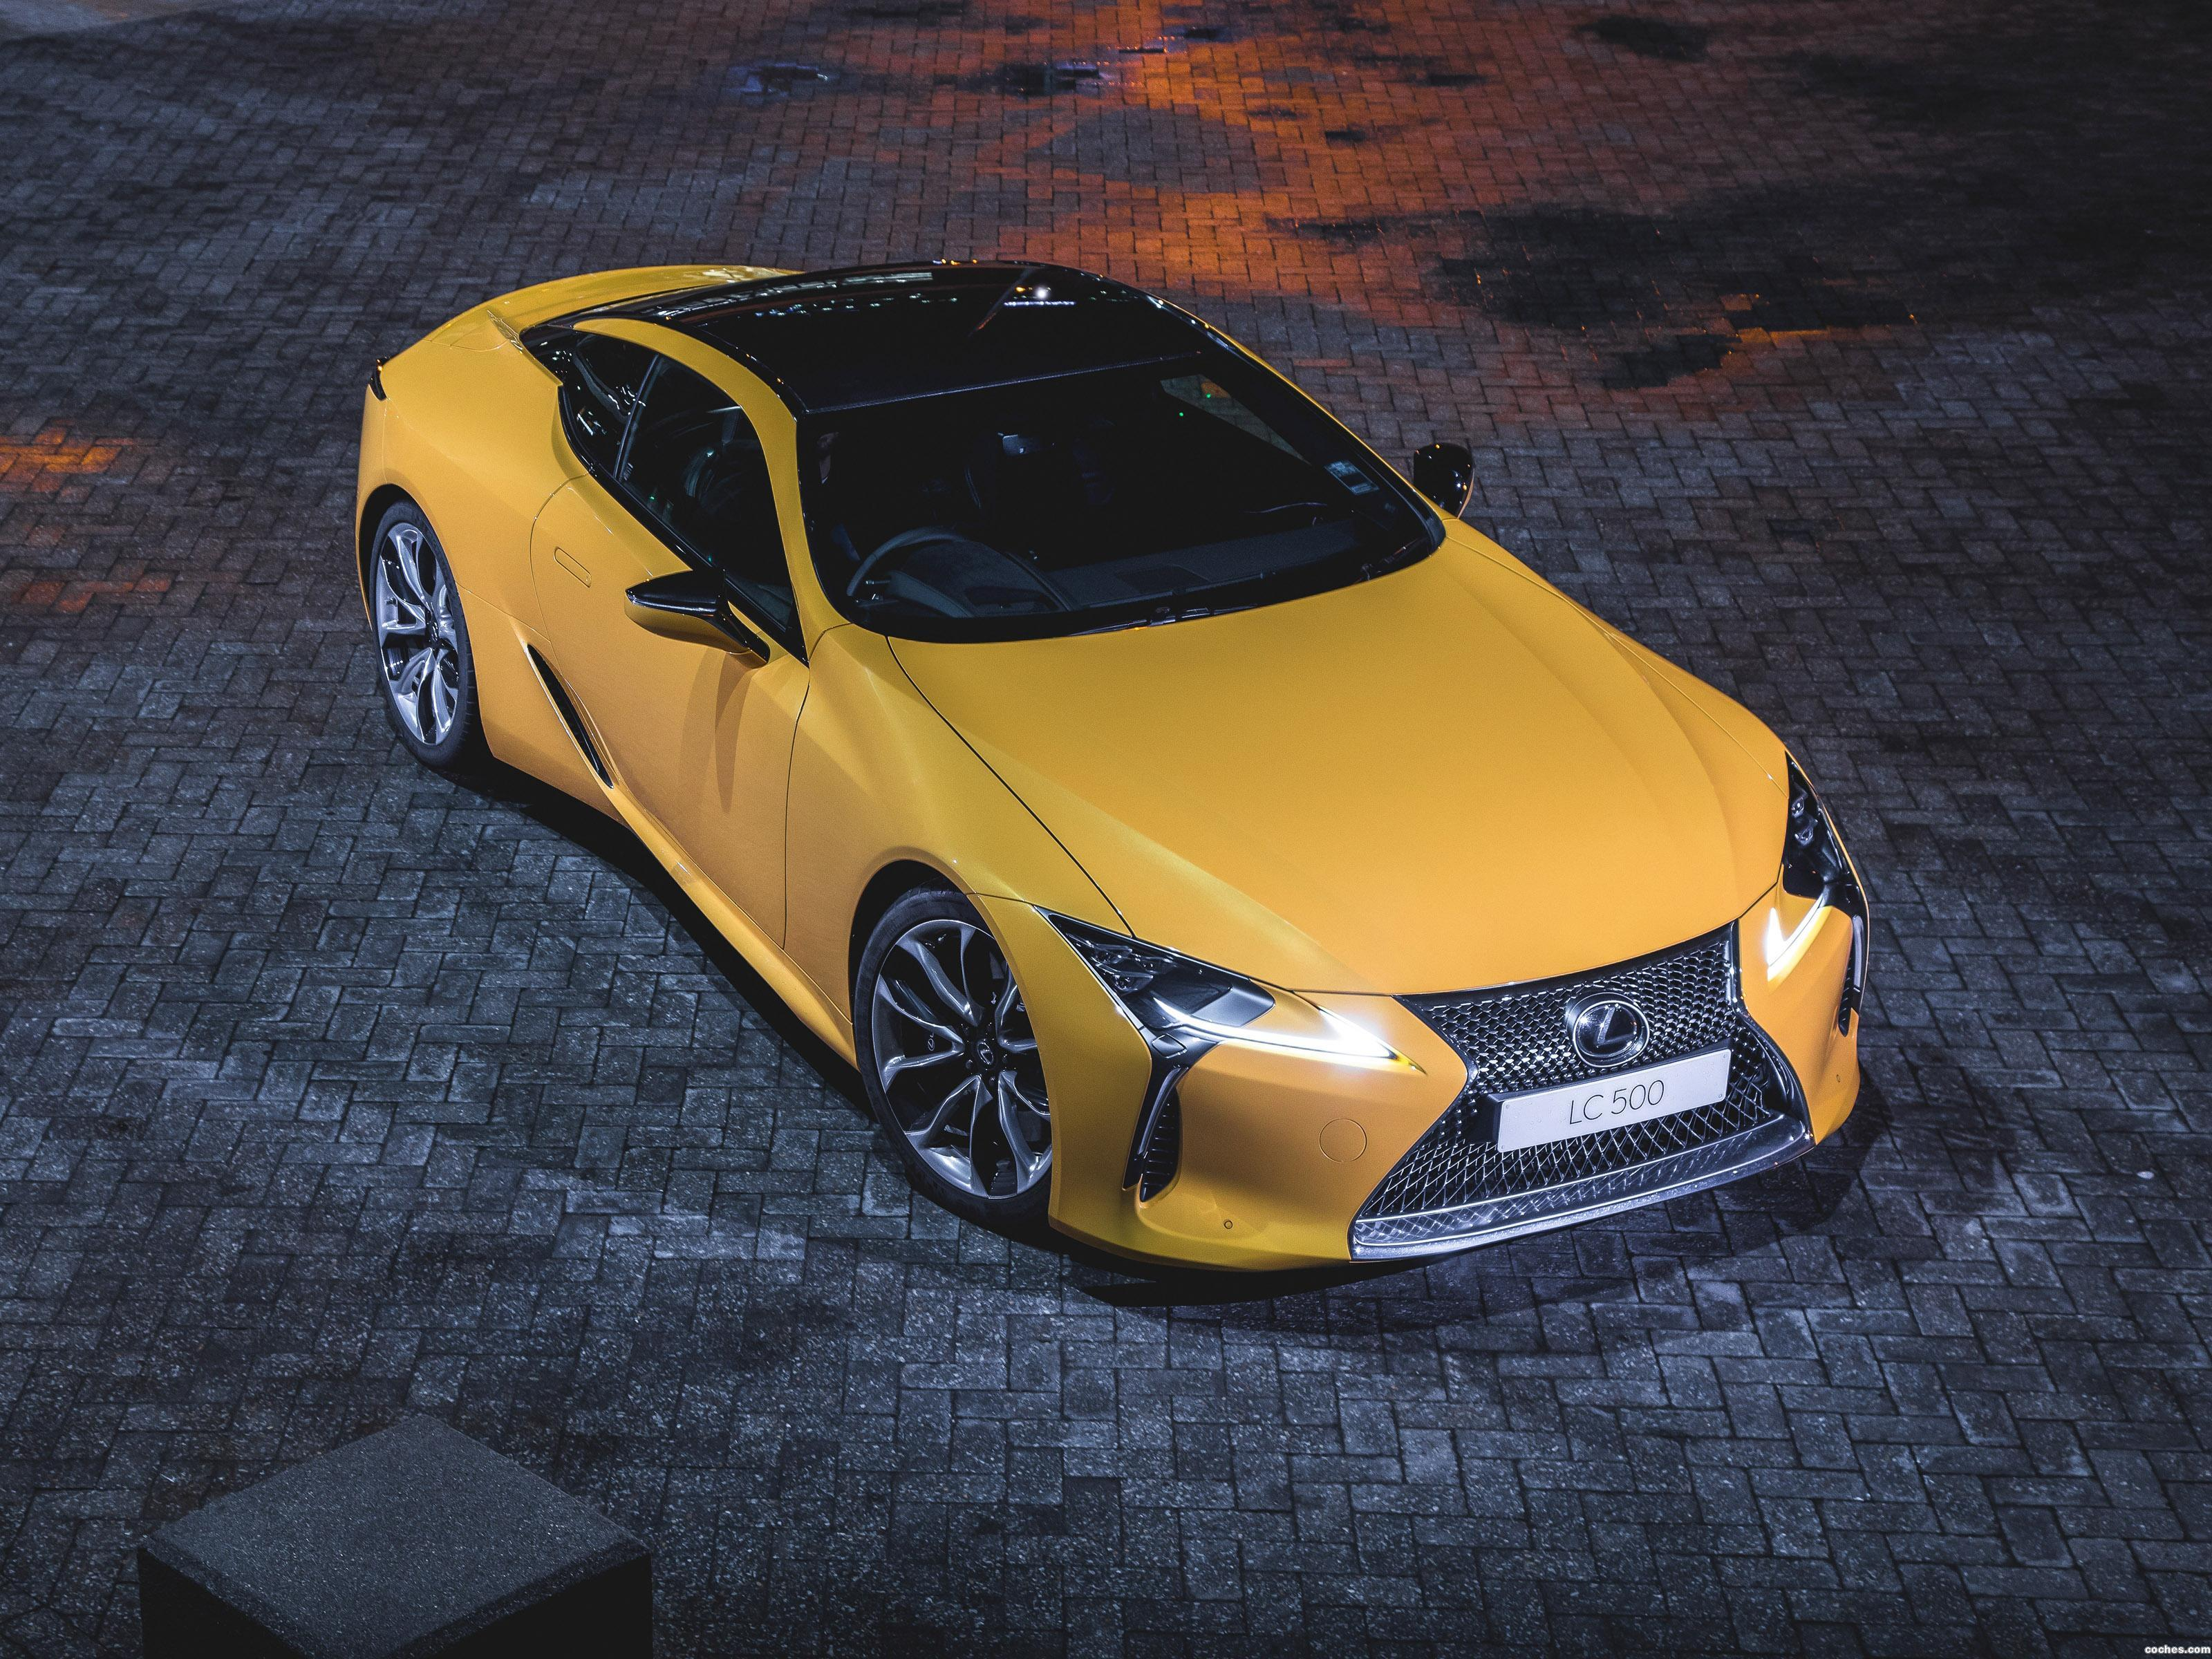 lexus_lc-500-south-africa-2017_r15.jpg